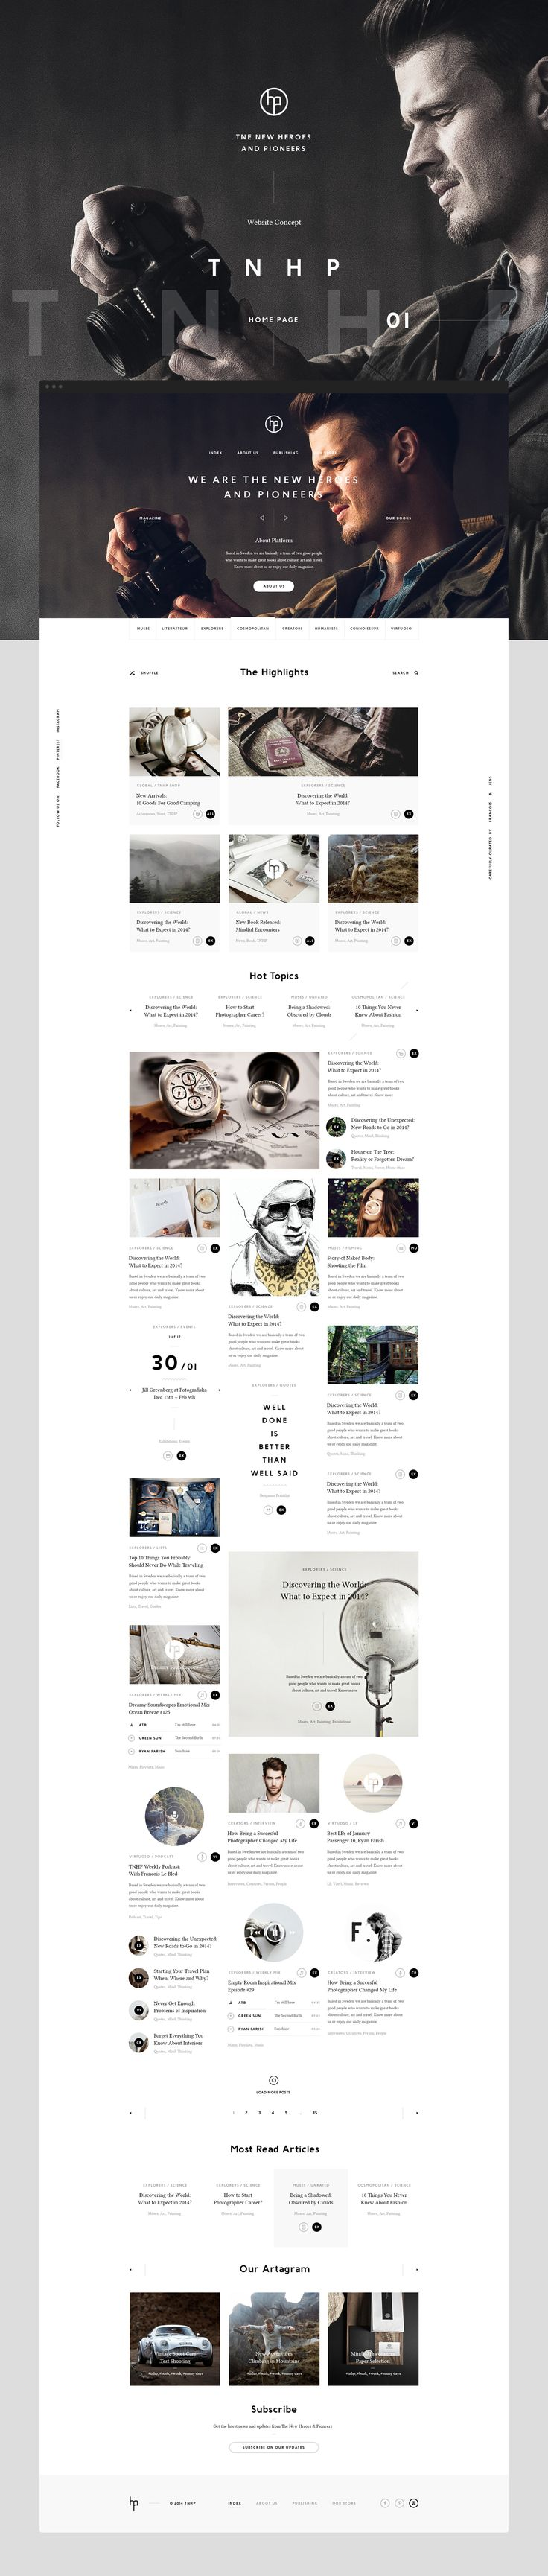 Art-direction, research and complete website design for brand new online cultural magazine and book publishing company from Sweden.They have an amazing team of partners coming from publishing, editing, photography and journalism worlds, with a huge pass…